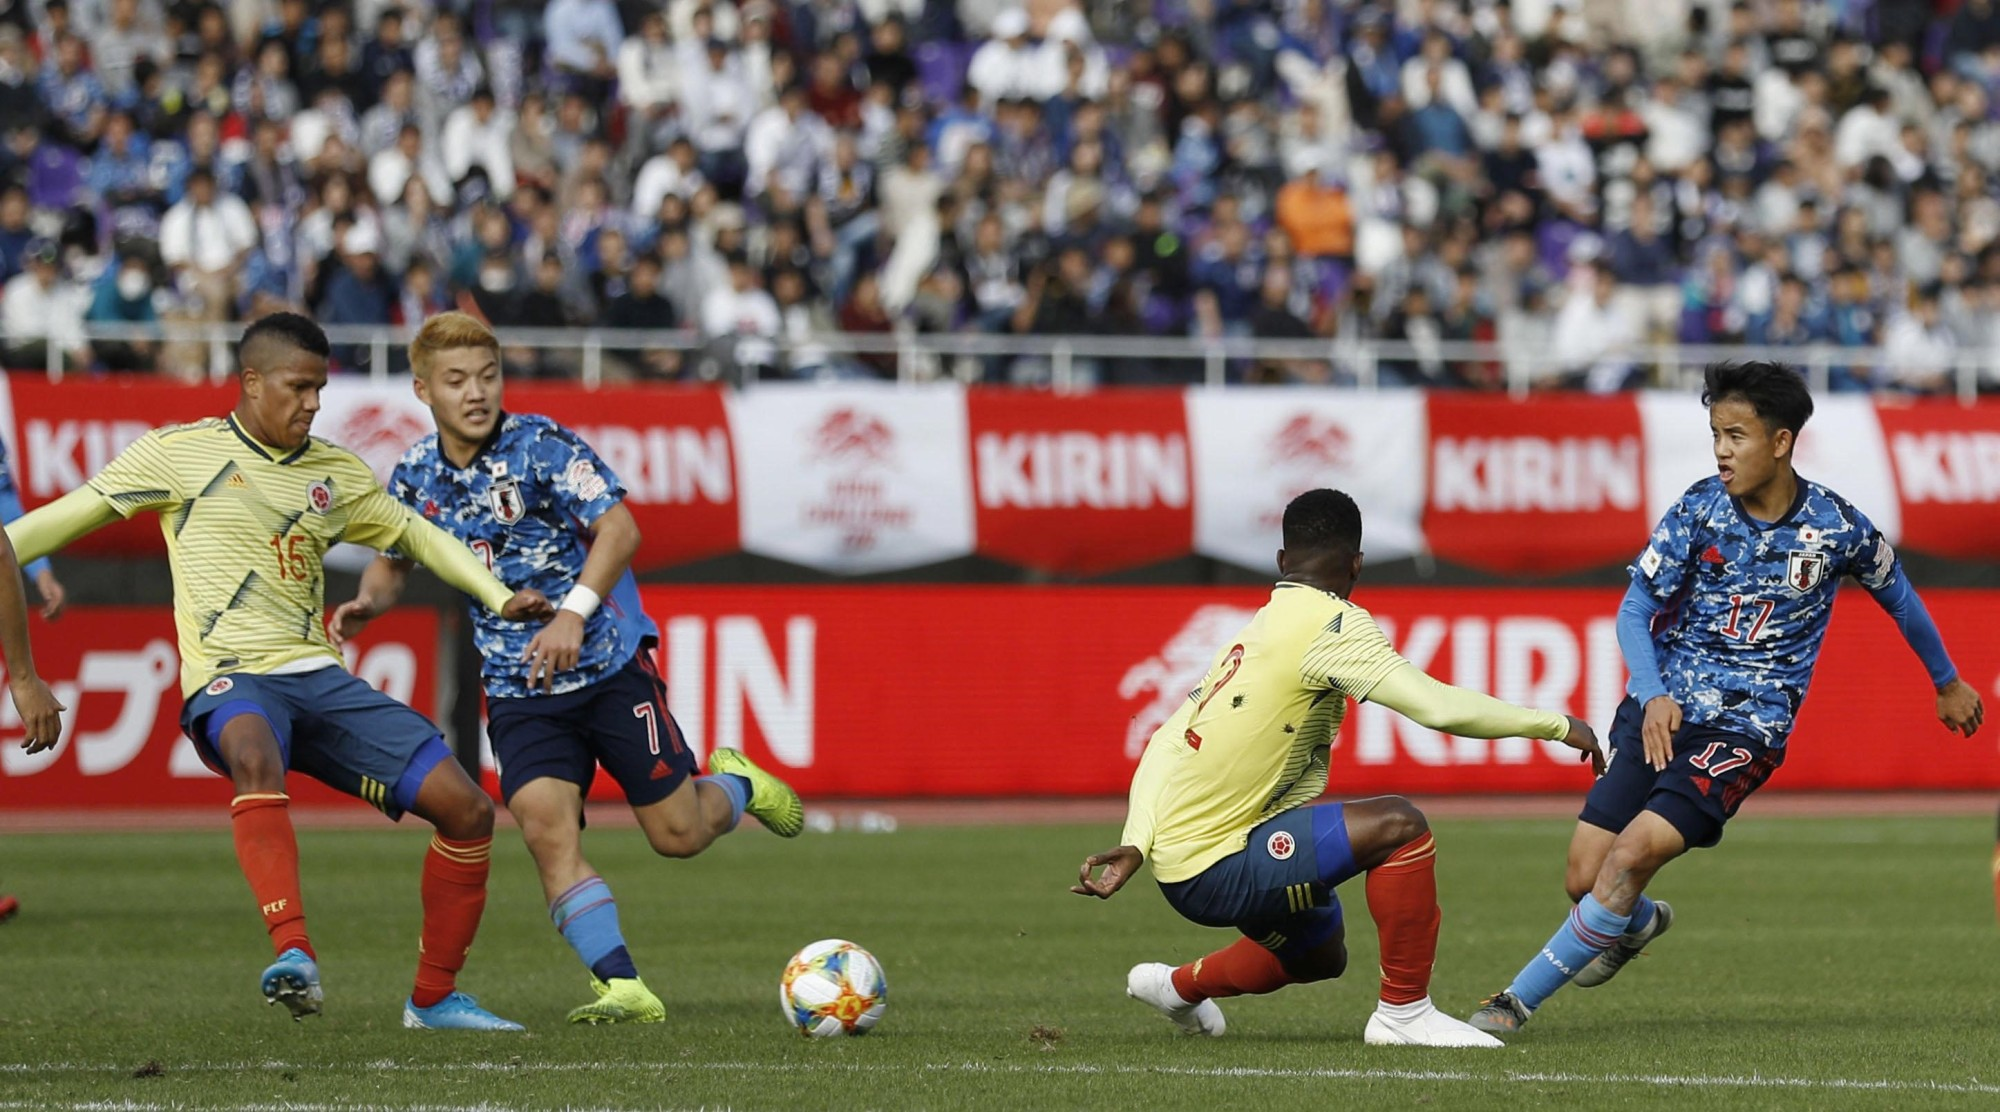 Takefusa Kubo (right) passes to Ritsu Doan (second from left) during an under-22 friendly between Japan and Colombia on Sunday in Hiroshima. | KYODO